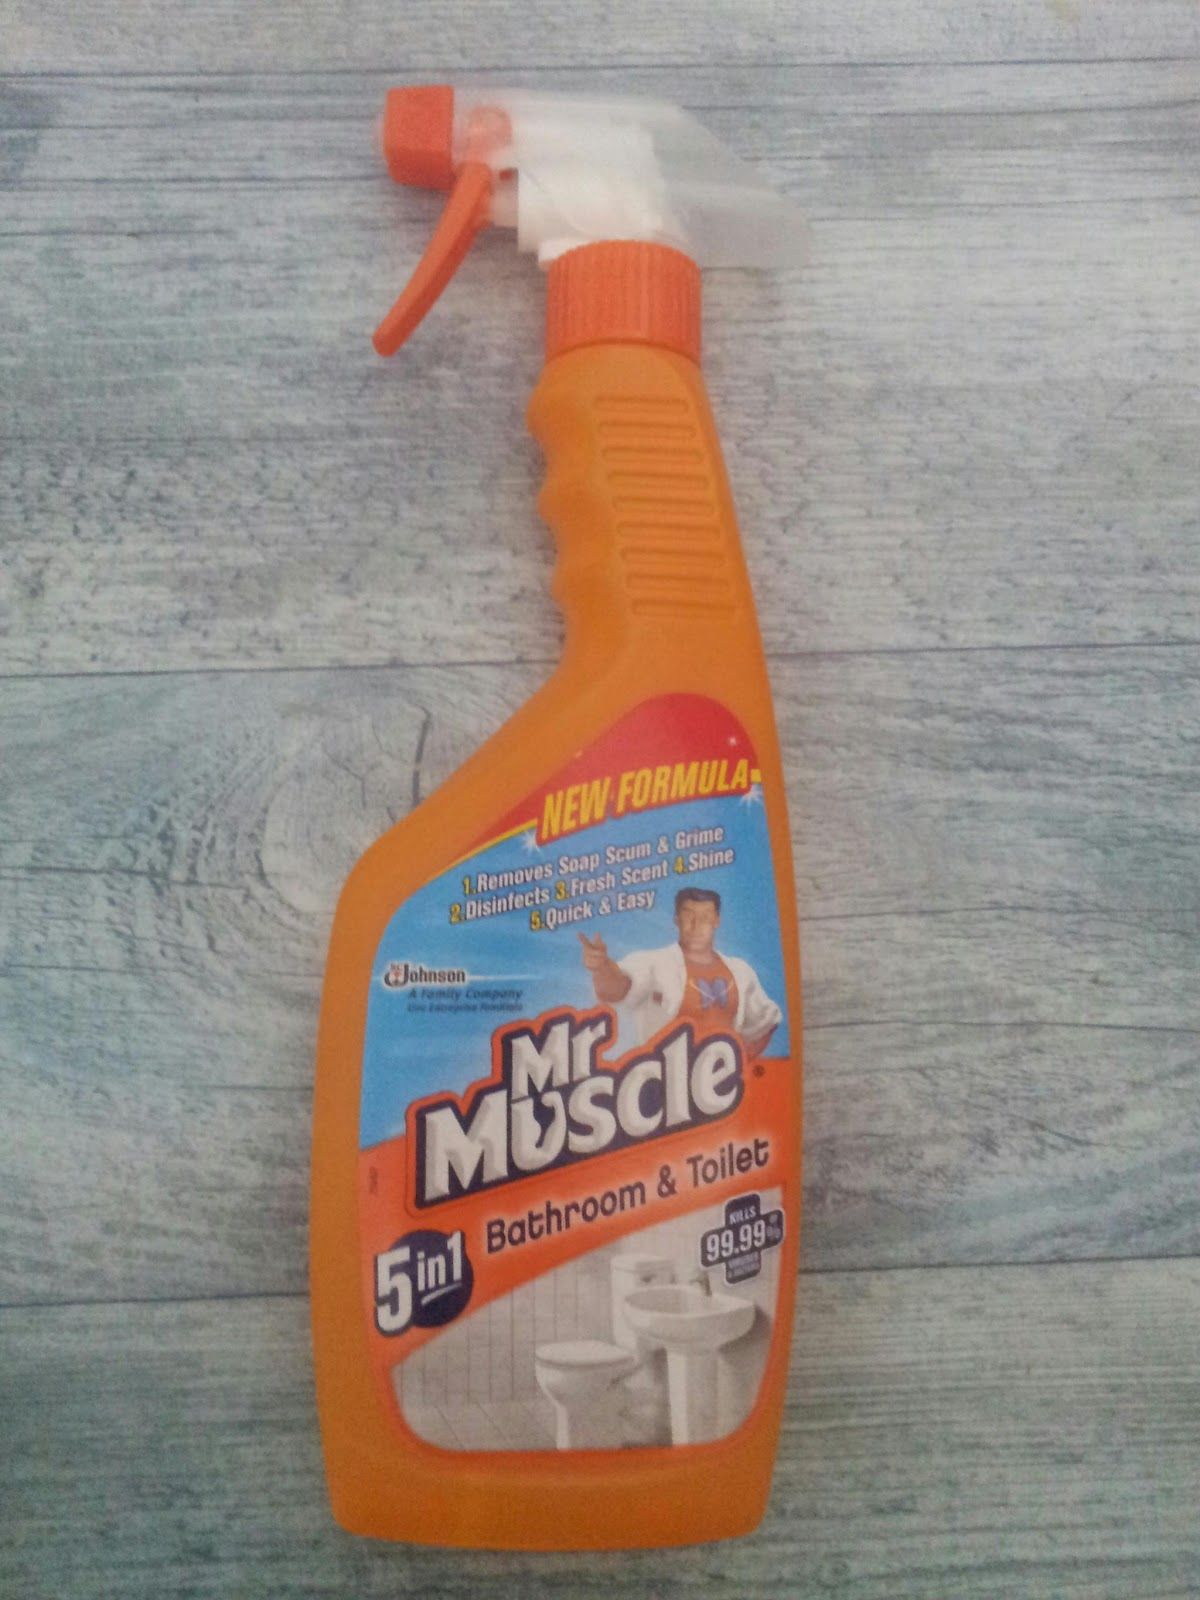 Mr muscle bathroom and toilet cleaner - The Review Hut